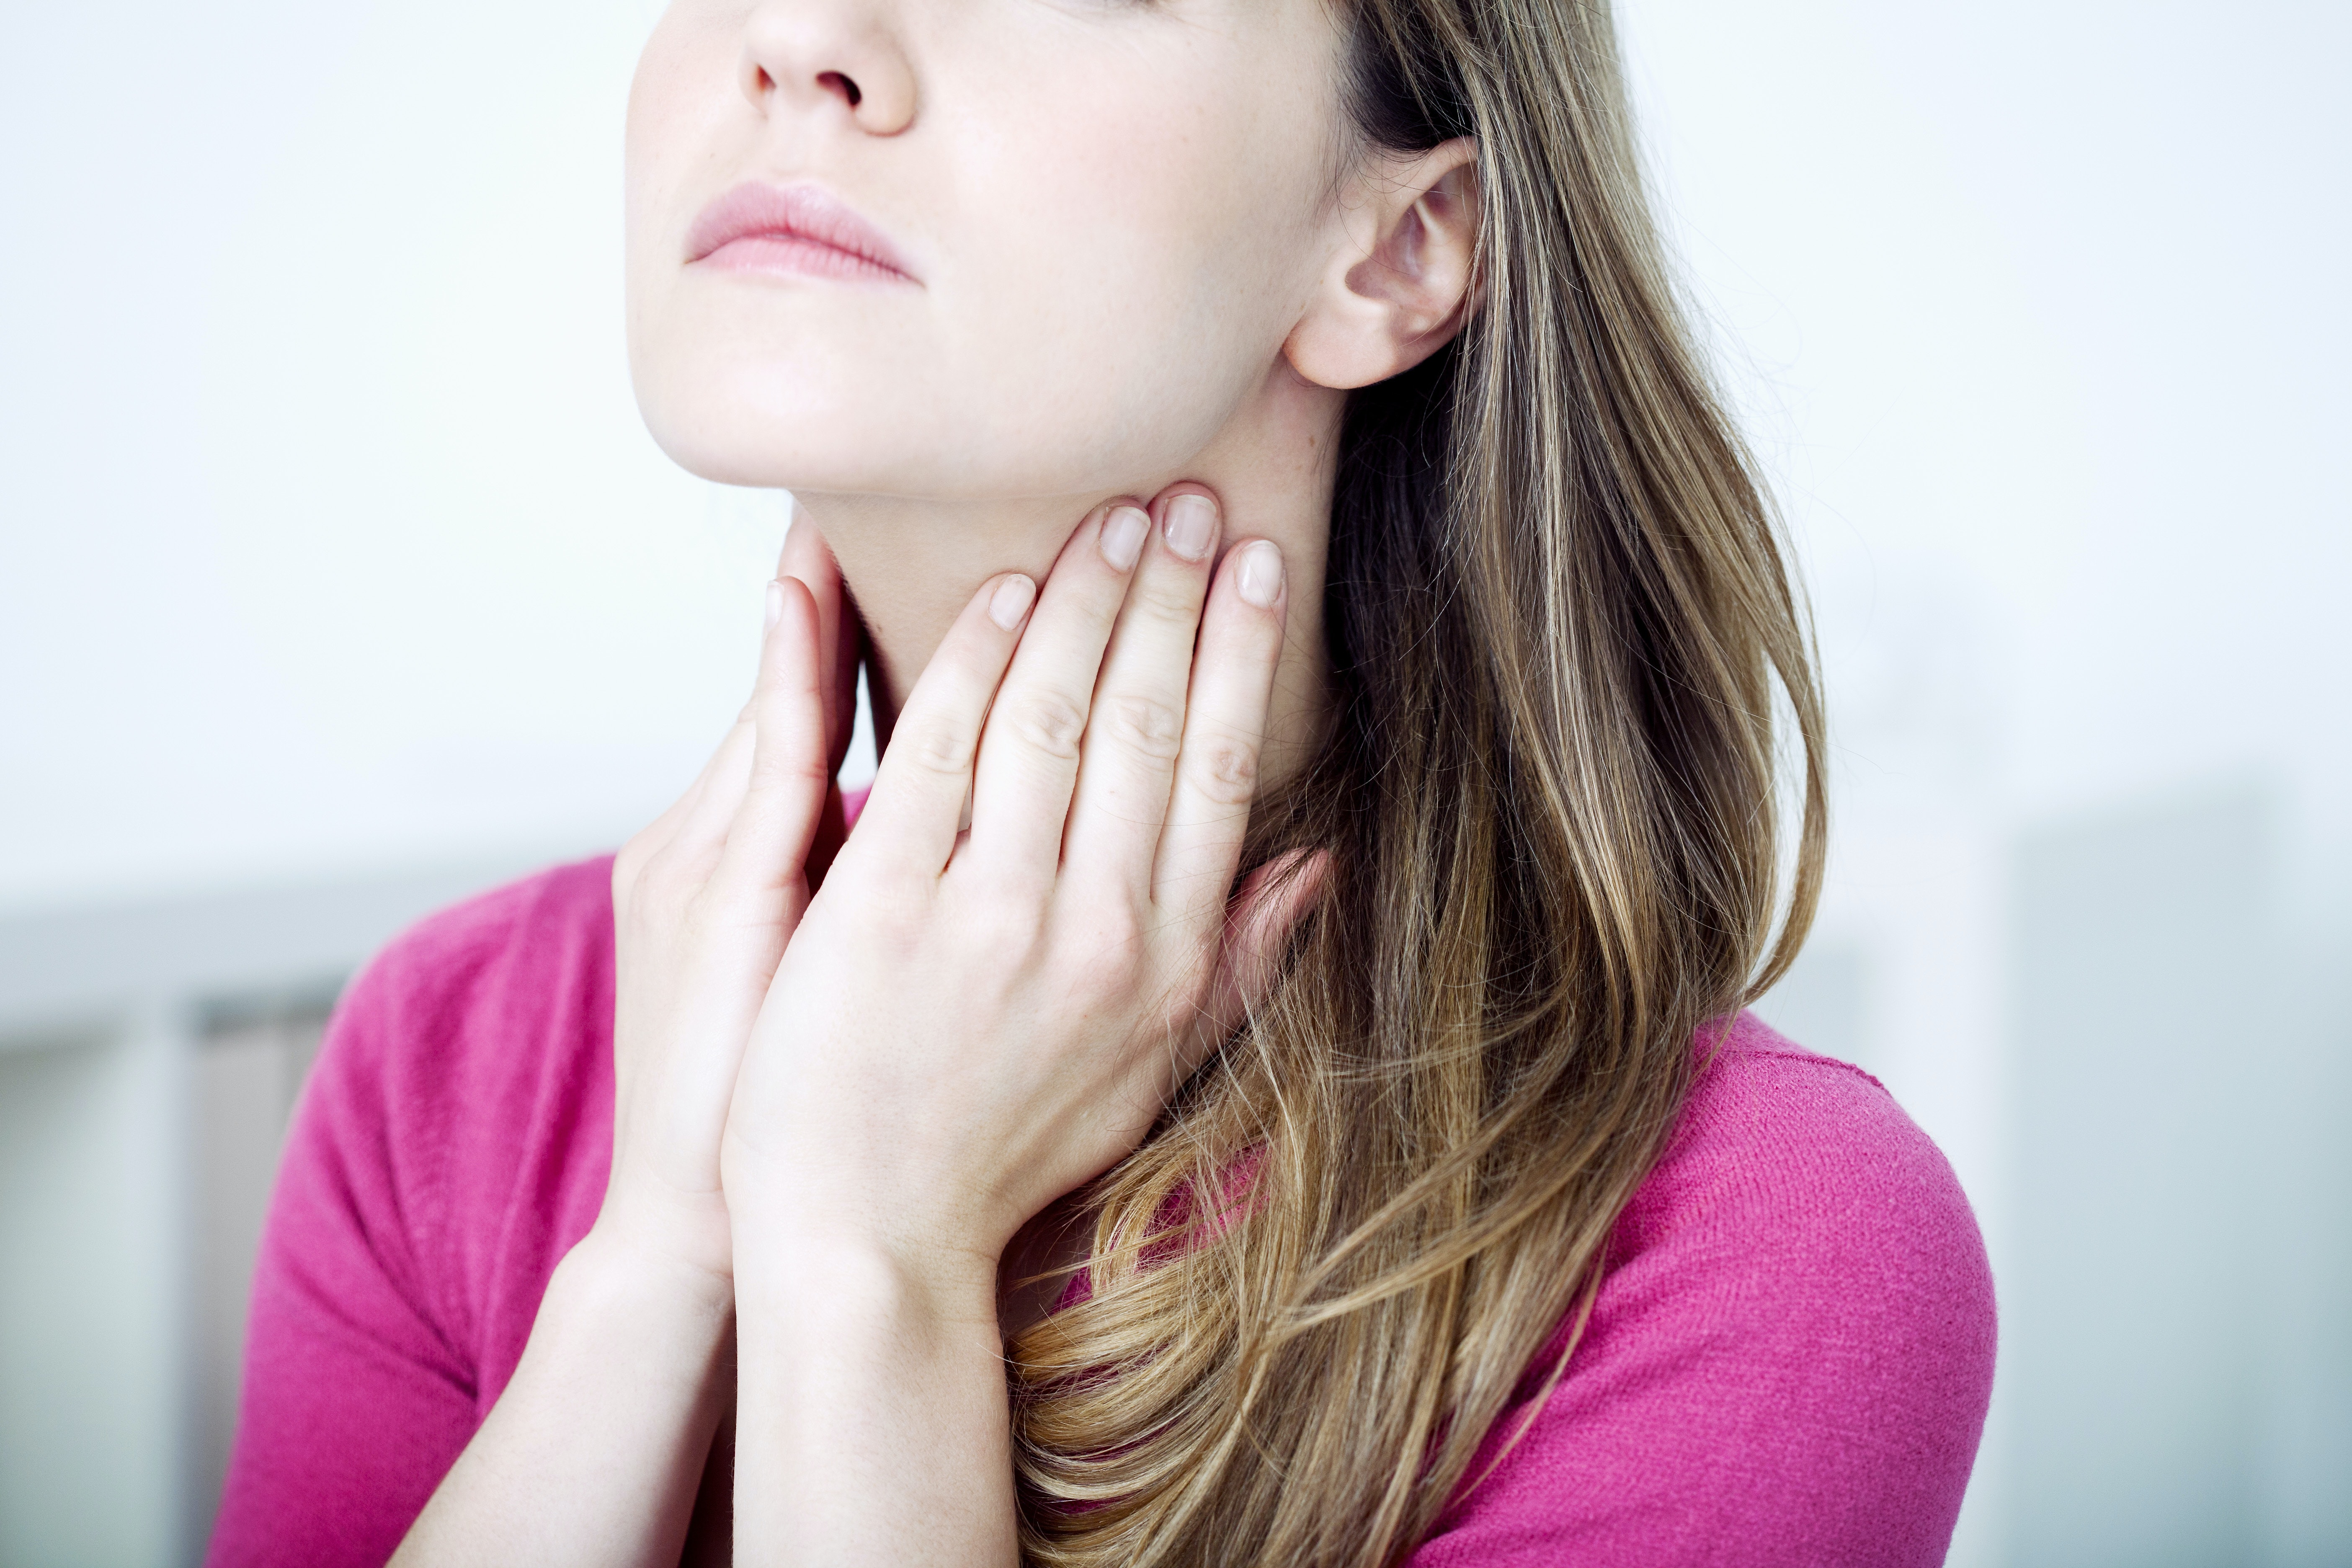 An image depicting a person suffering from mild sore throat symptoms